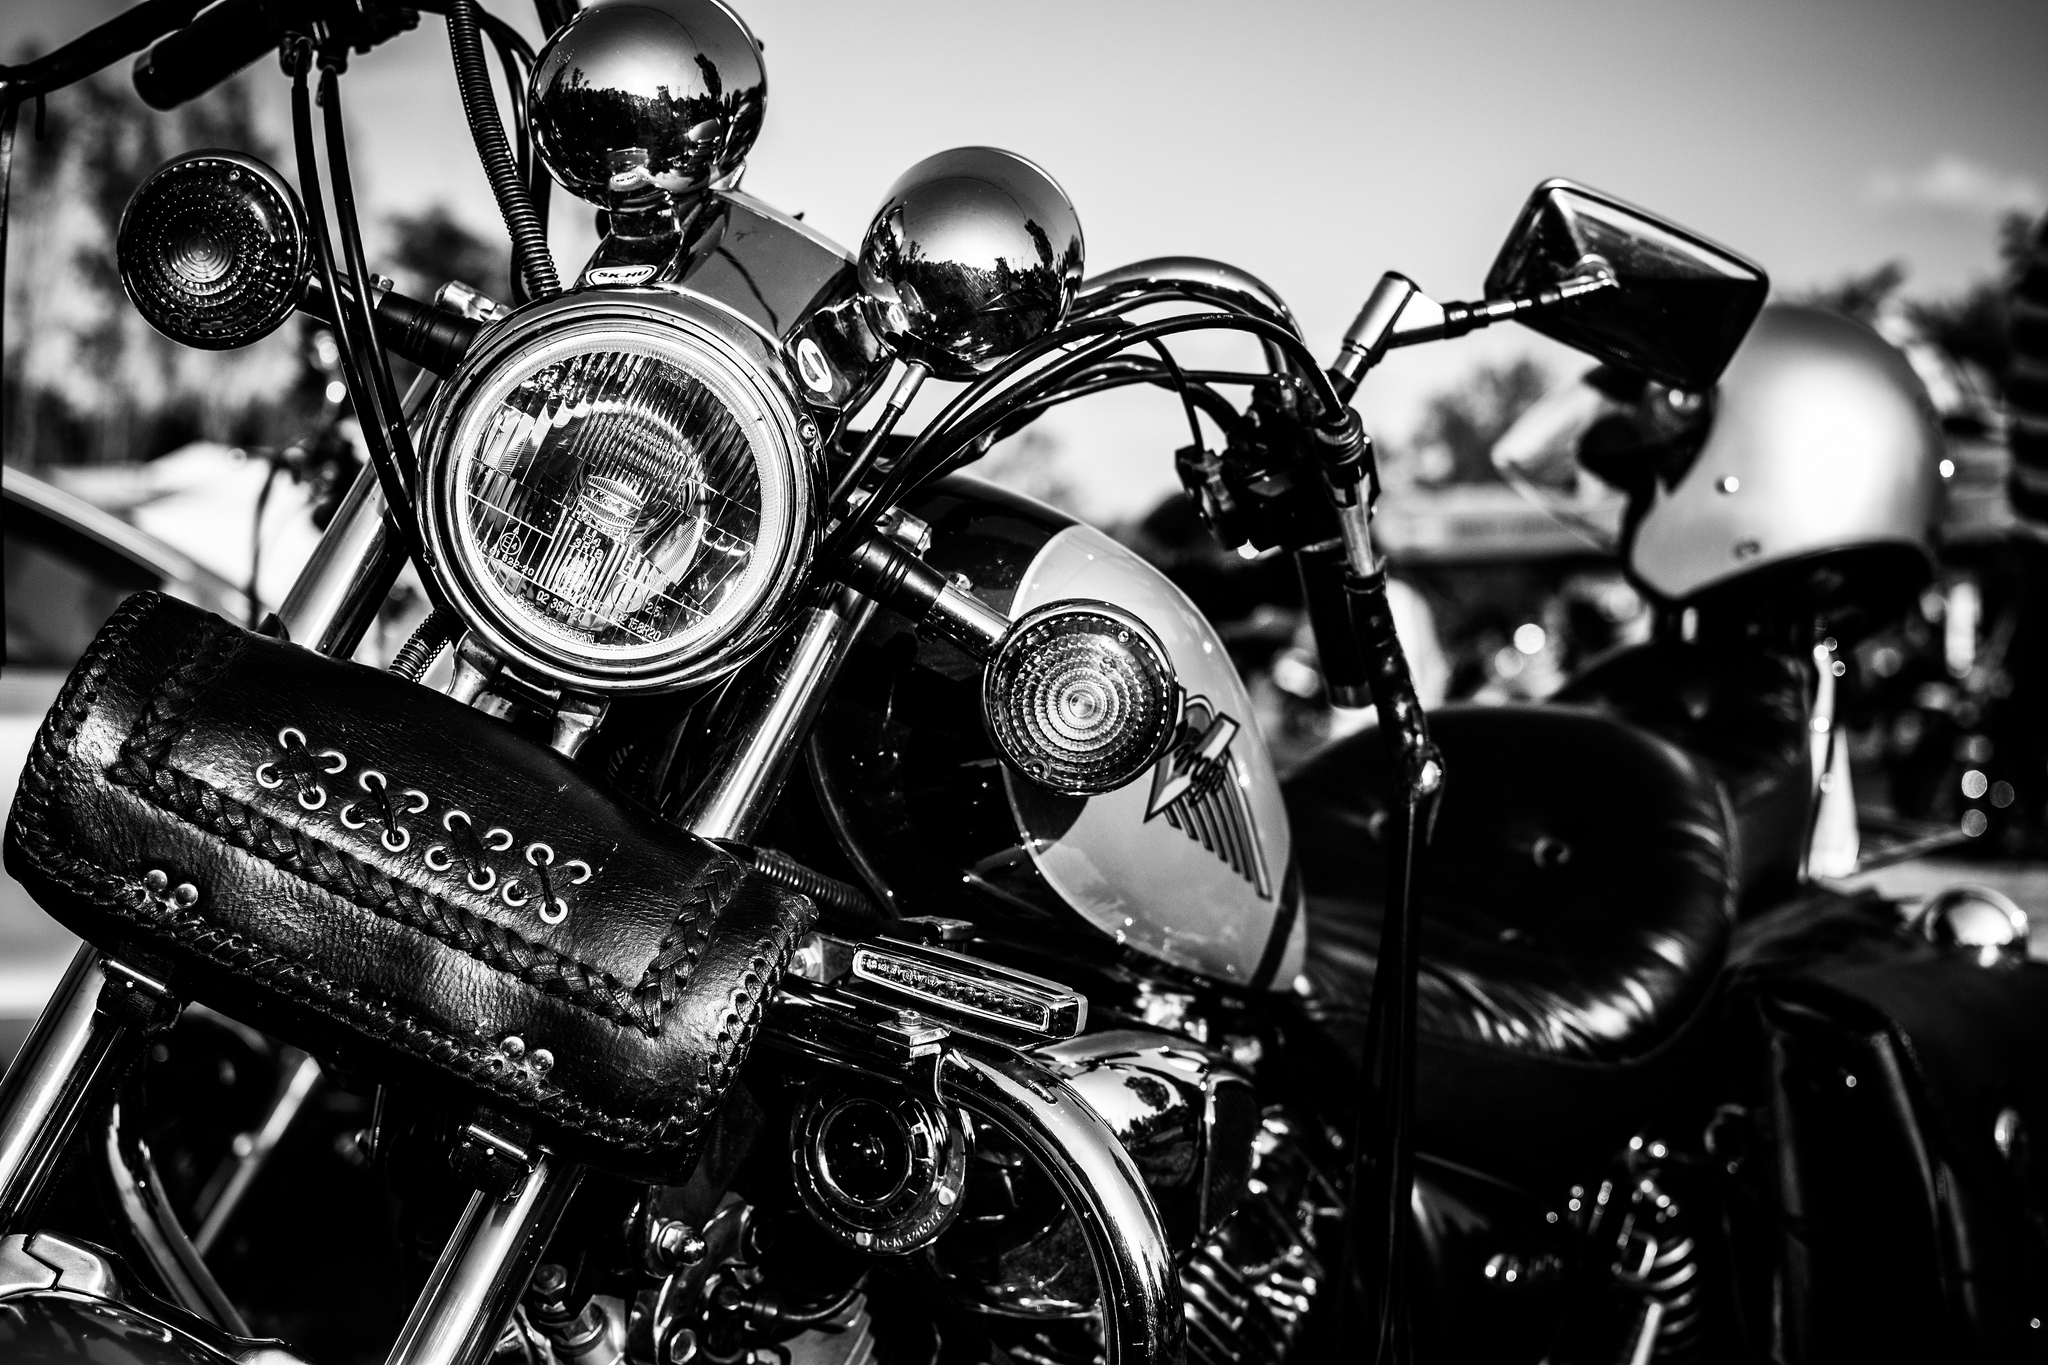 Harley Davidson Wallpaper HD 2048x1365